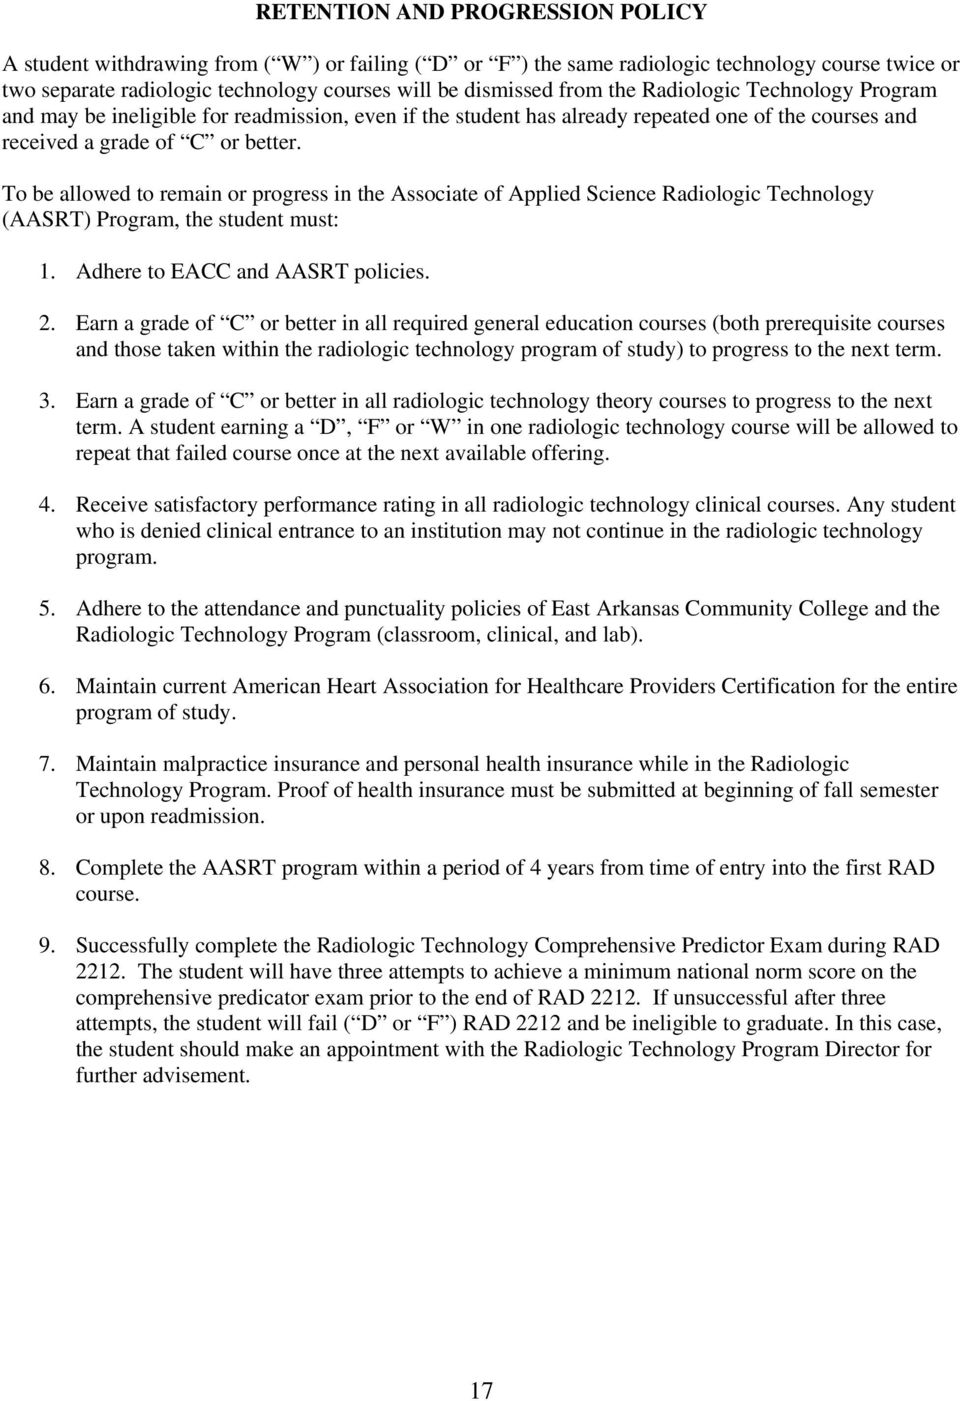 To be allowed to remain or progress in the Associate of Applied Science Radiologic Technology (AASRT) Program, the student must: 1. Adhere to EACC and AASRT policies. 2.